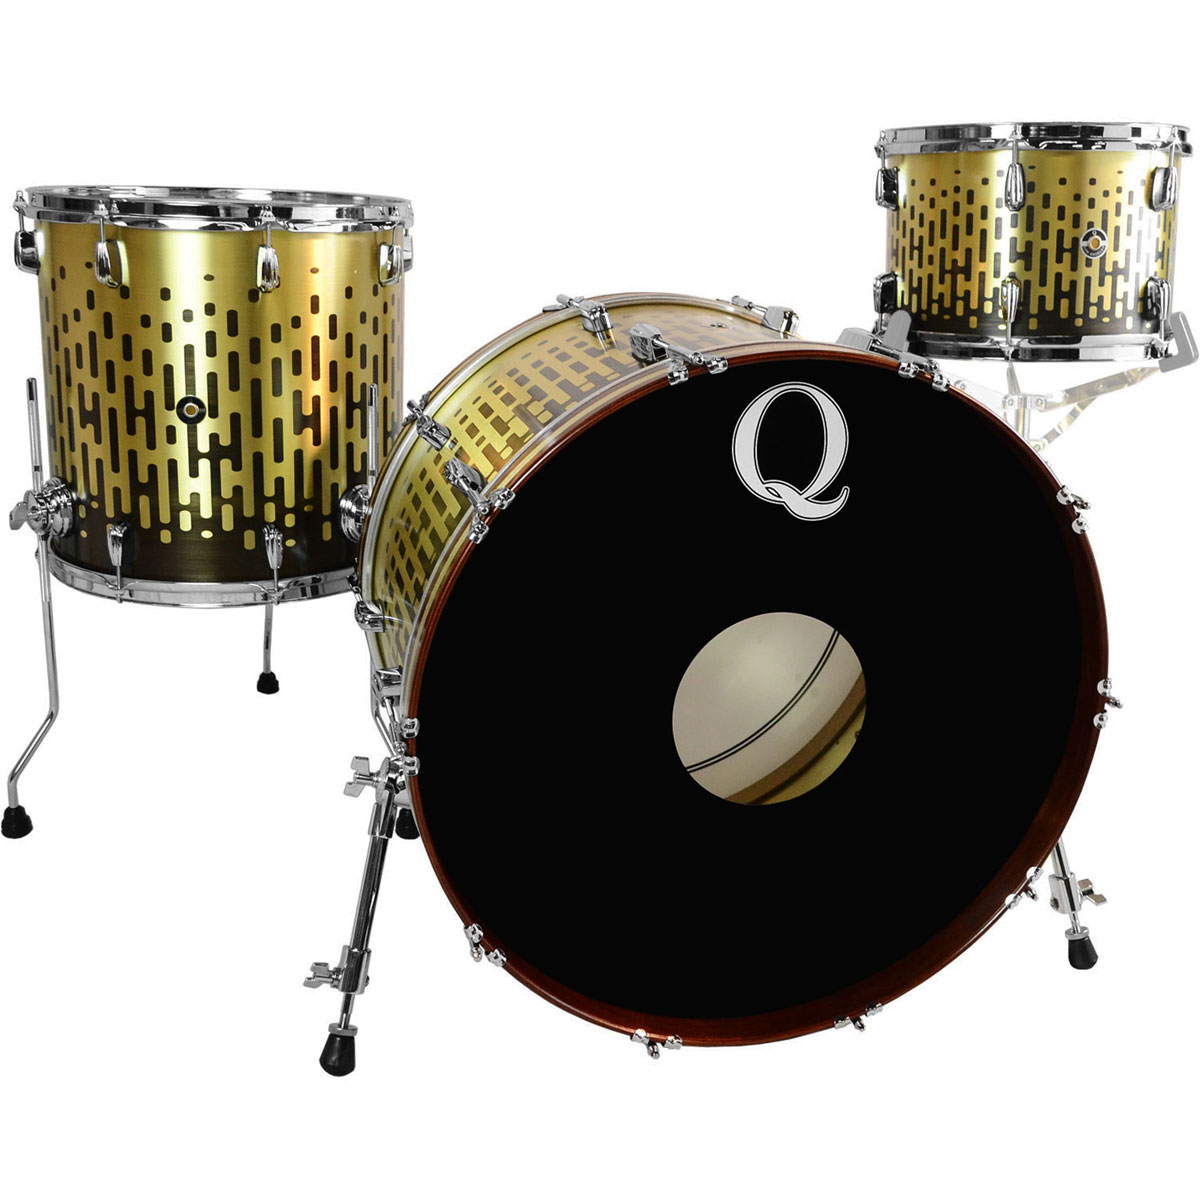 """Q Drum Co. Brass 3-Piece Drum Set Shell Pack (24"""" Bass, 13/16"""" Toms) in Gravity Illusion Etched Patina"""